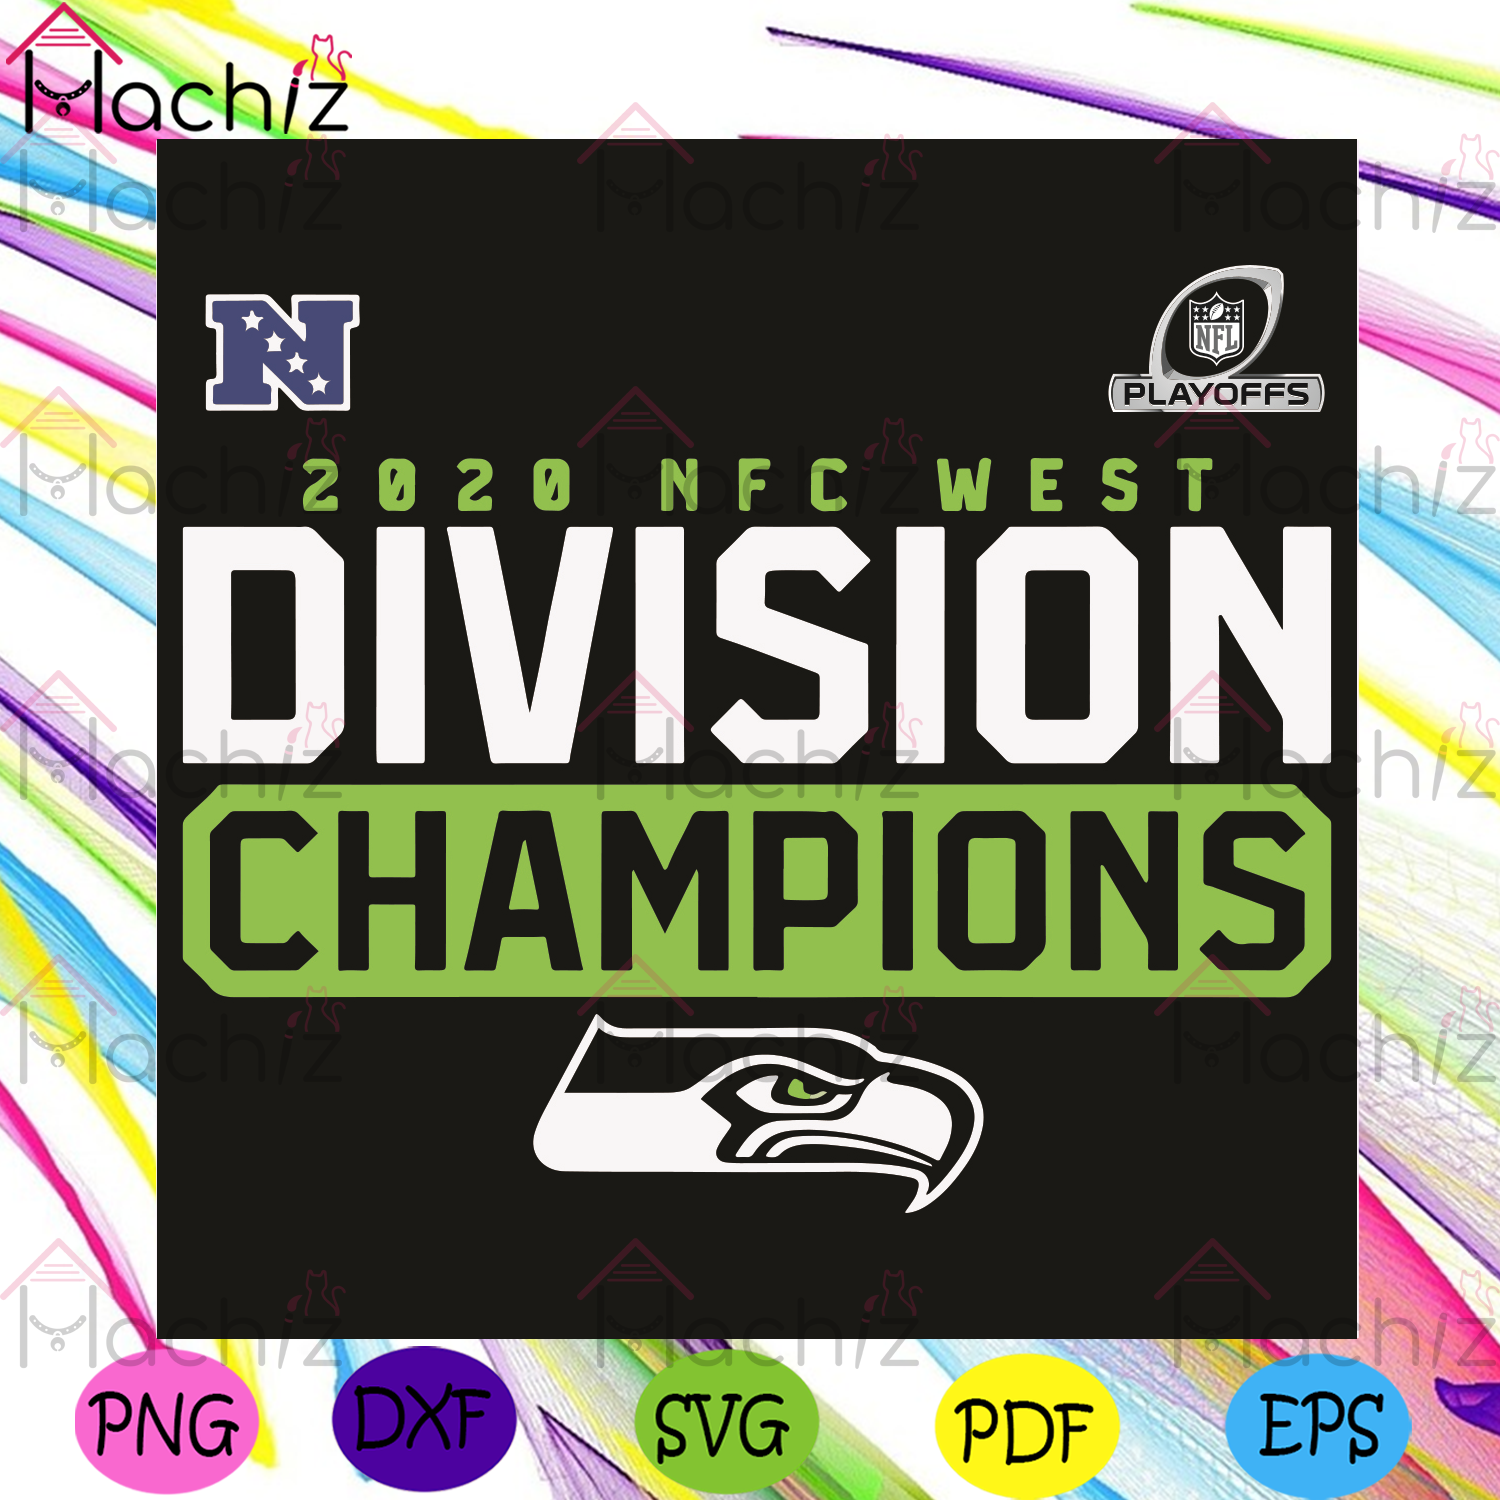 2020 NFC West Division Champions Svg, Sport Svg, Seattle Seahawks Svg, Seattle Seahawks Football Team Svg, Seattle Seahawks Lovers Svg, Seattle Seahawks Fans Svg, Seattle Seahawks Gifts Svg, NFC Svg, Football Svg,